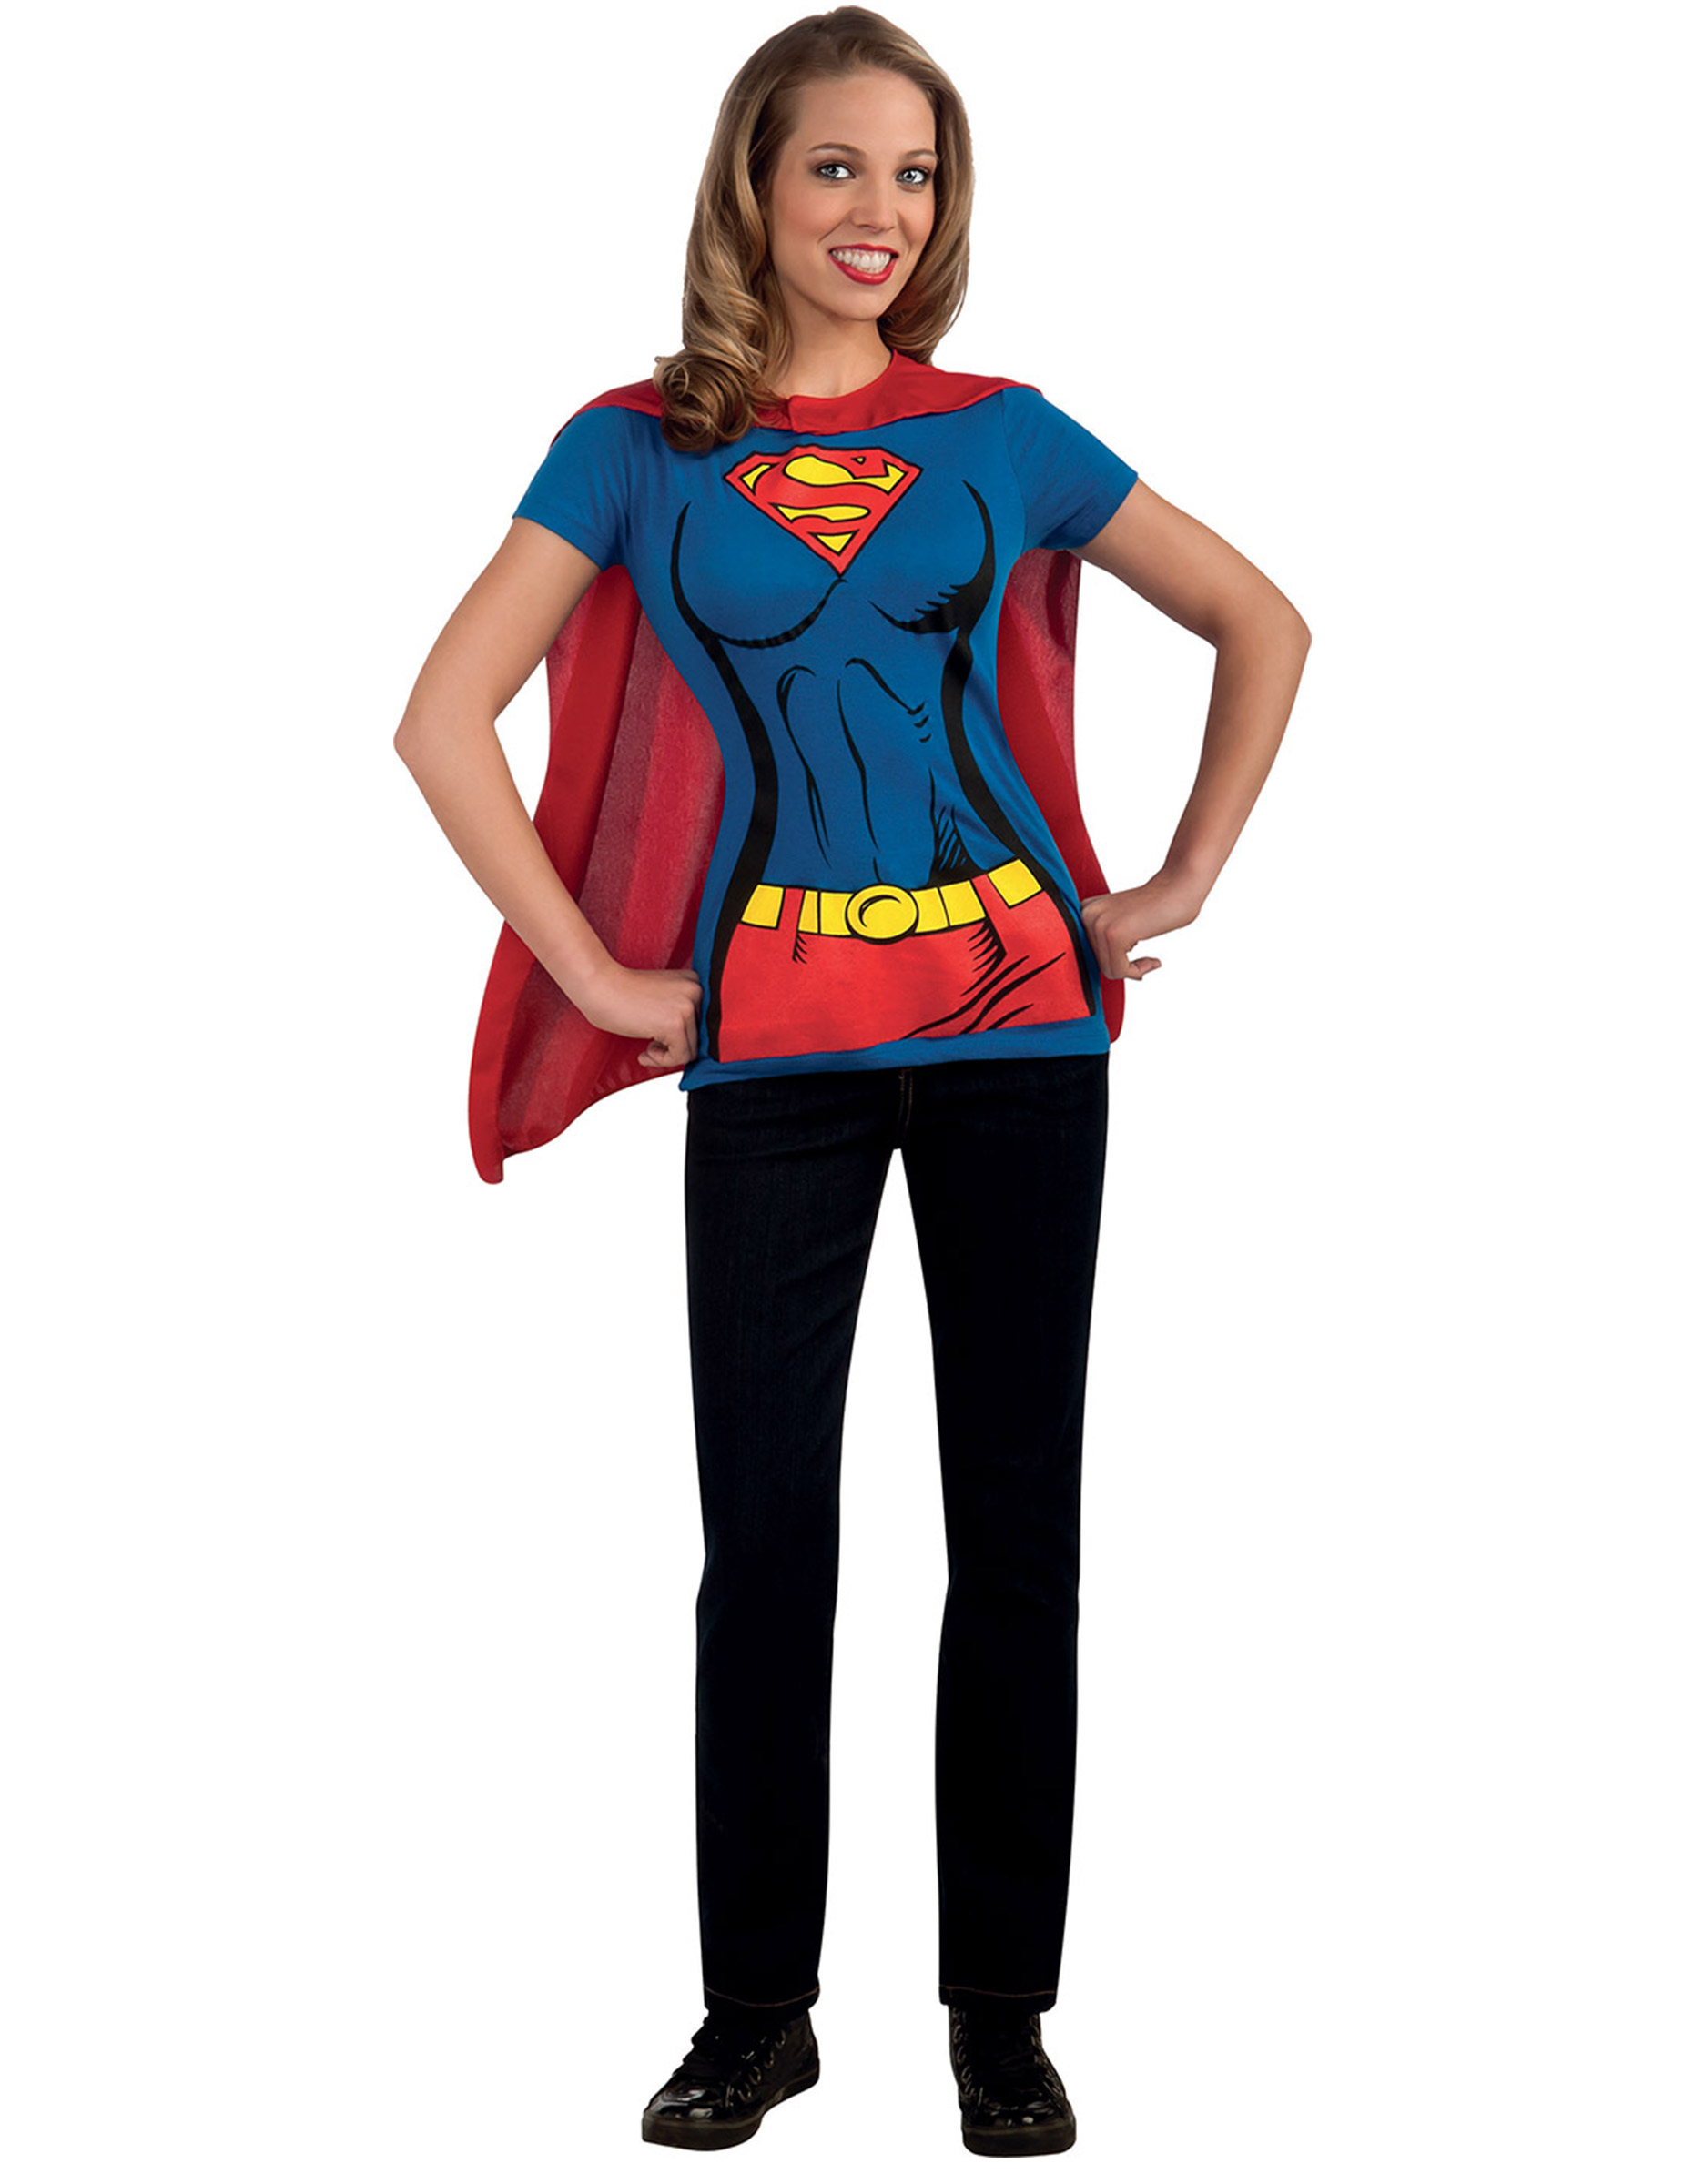 supergirl t shirt f r erwachsene kost me f r erwachsene und g nstige faschingskost me vegaoo. Black Bedroom Furniture Sets. Home Design Ideas